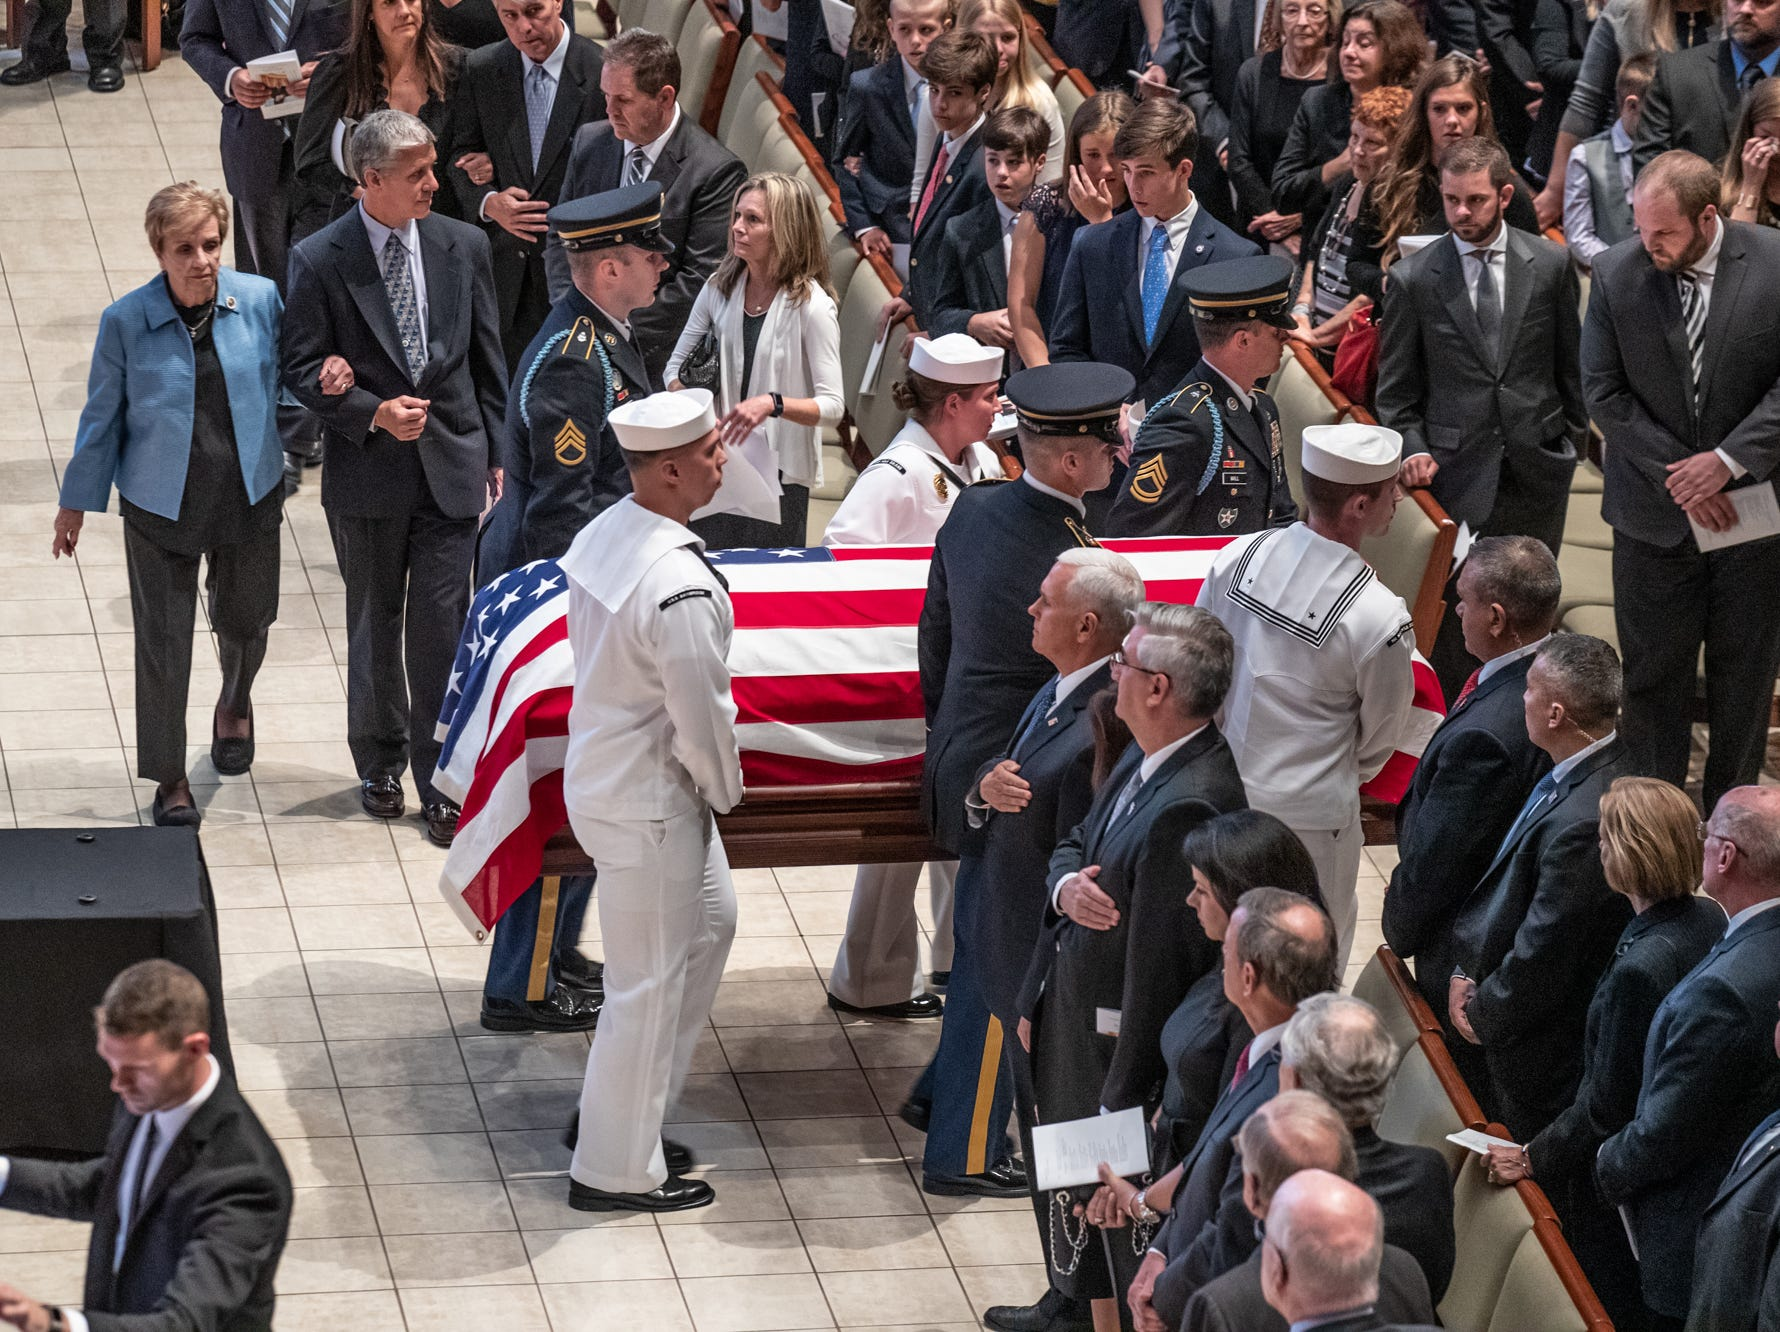 The casket of former U.S. Sen. Richard Lugar is geared by the Honor Guard after a memorial service held at Saint Luke's United Methodist Church in Indianapolis, on Wednesday, May 15, 2019. Lugar served as mayor of Indianapolis from 1968 to 1975 and U.S. senator from 1977 to 2013. He died April 28, 2019, at the age of 87.